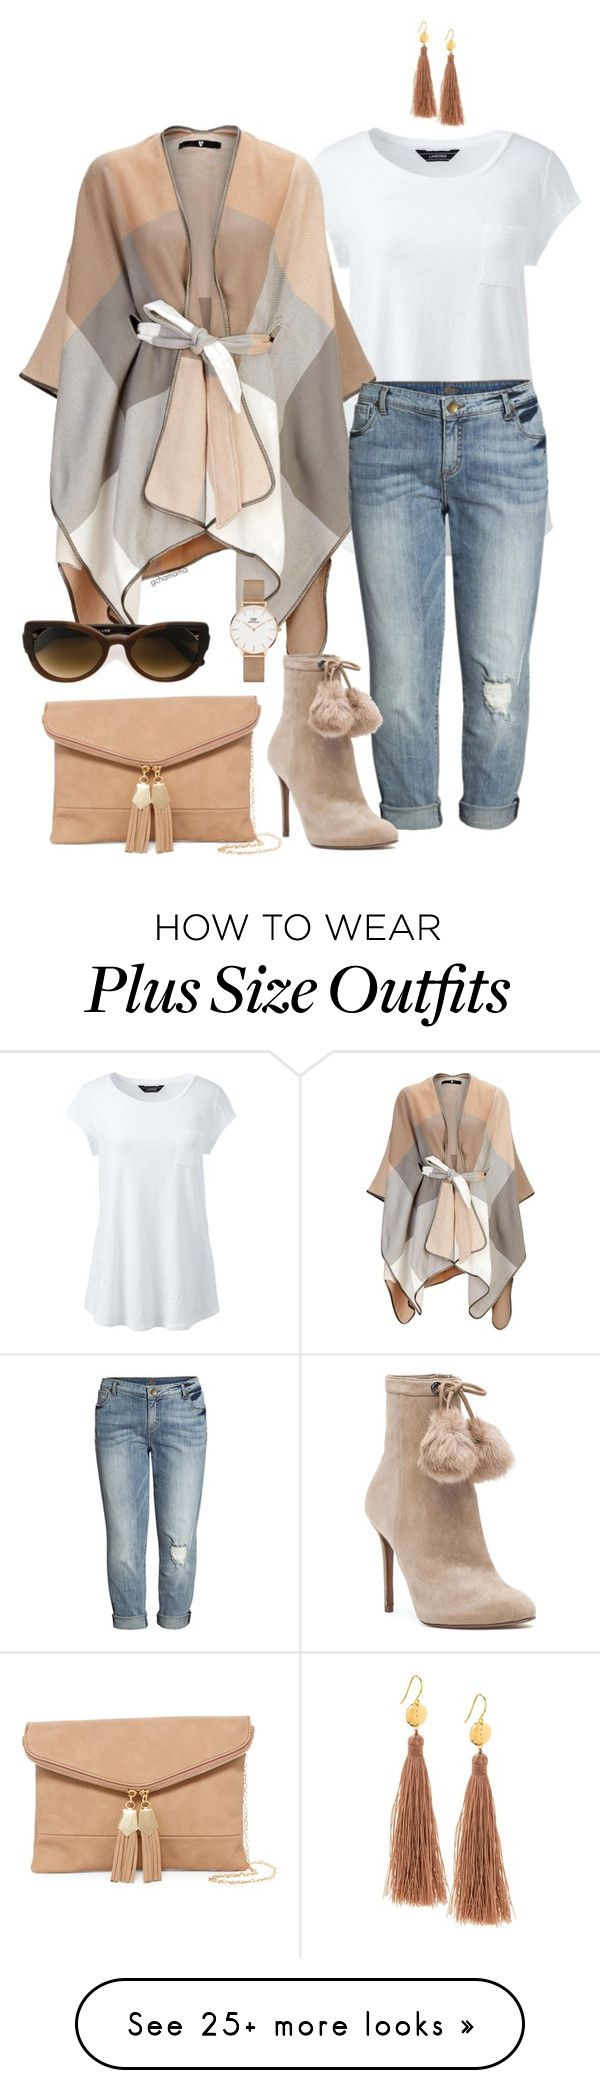 """Give it time- plus size"" by gchamama on Polyvore featuring Lands' End, KUT from the Kloth, MICHAEL Michael Kors, Gorjana, Urban Expressions, Martha Medeiros, Daniel Wellington and plus size clothing"